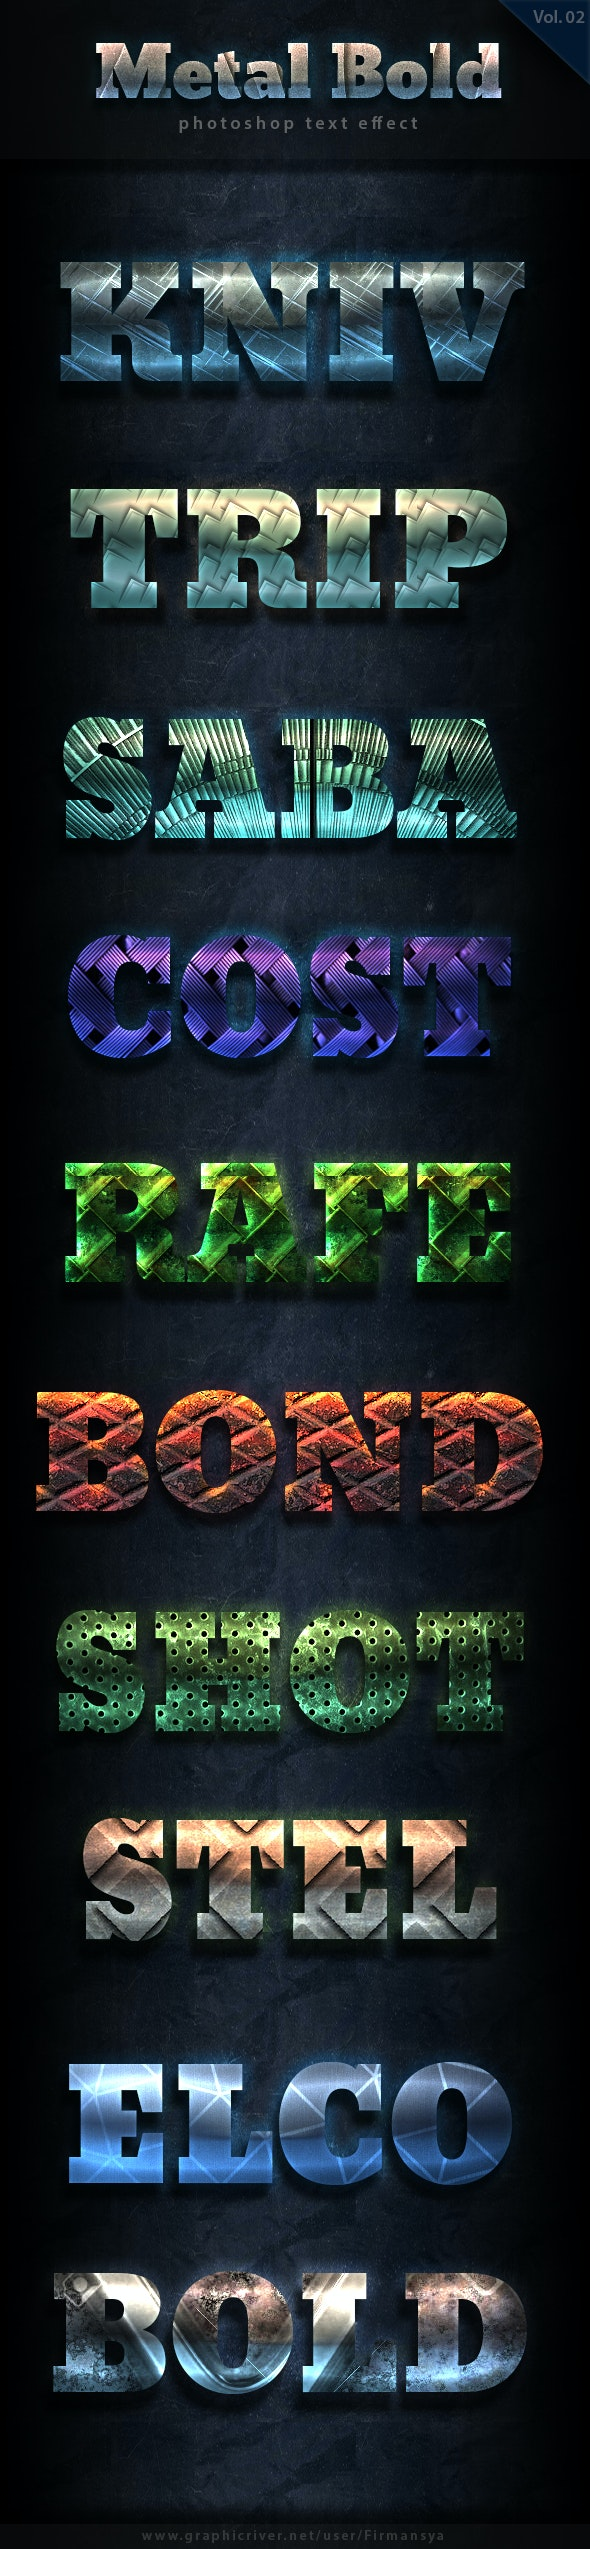 Metal Bold Text Effect Vol 2 - Text Effects Styles